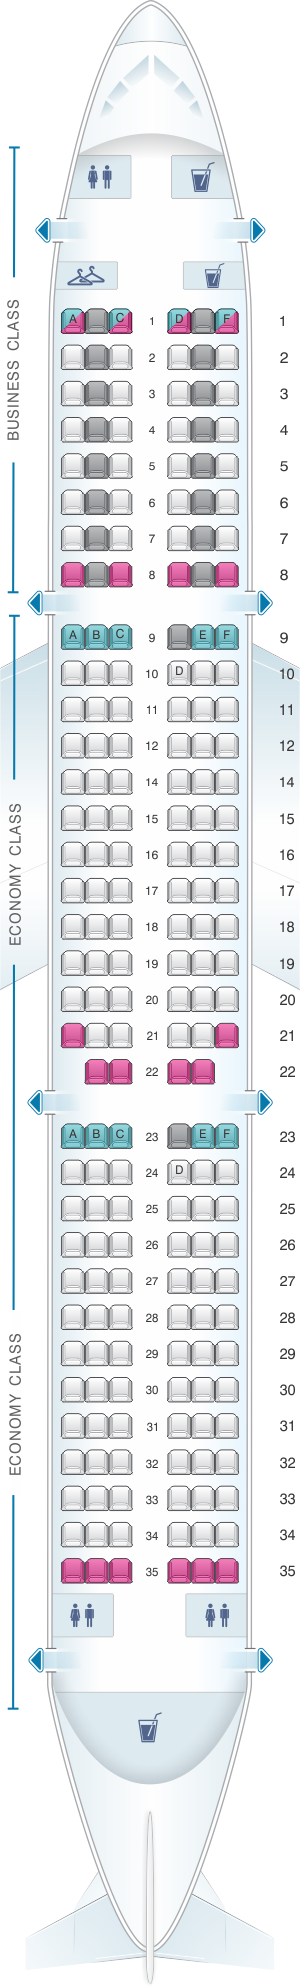 Seat map for Air France Airbus A321 Europe V1